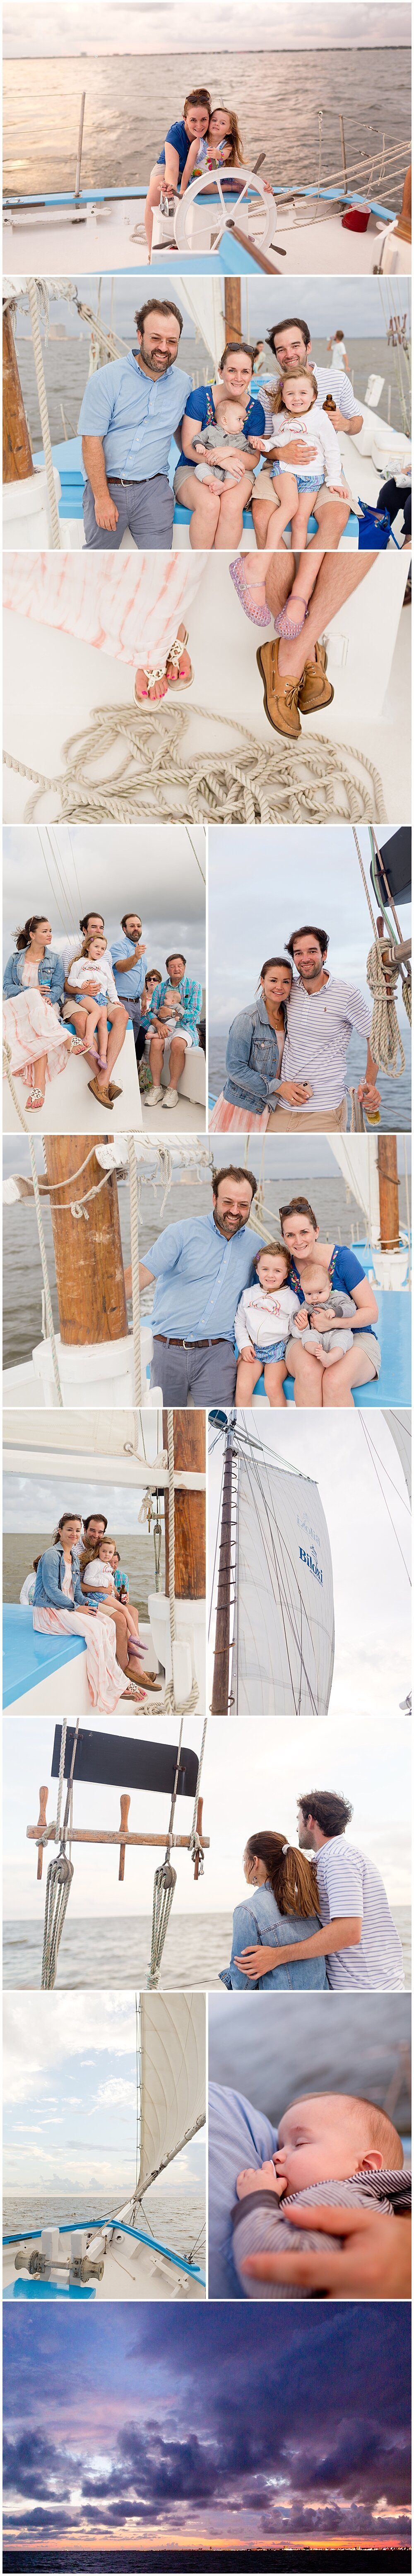 private sunset cruise on Biloxi Schooner - Mississippi Gulf Coast fun